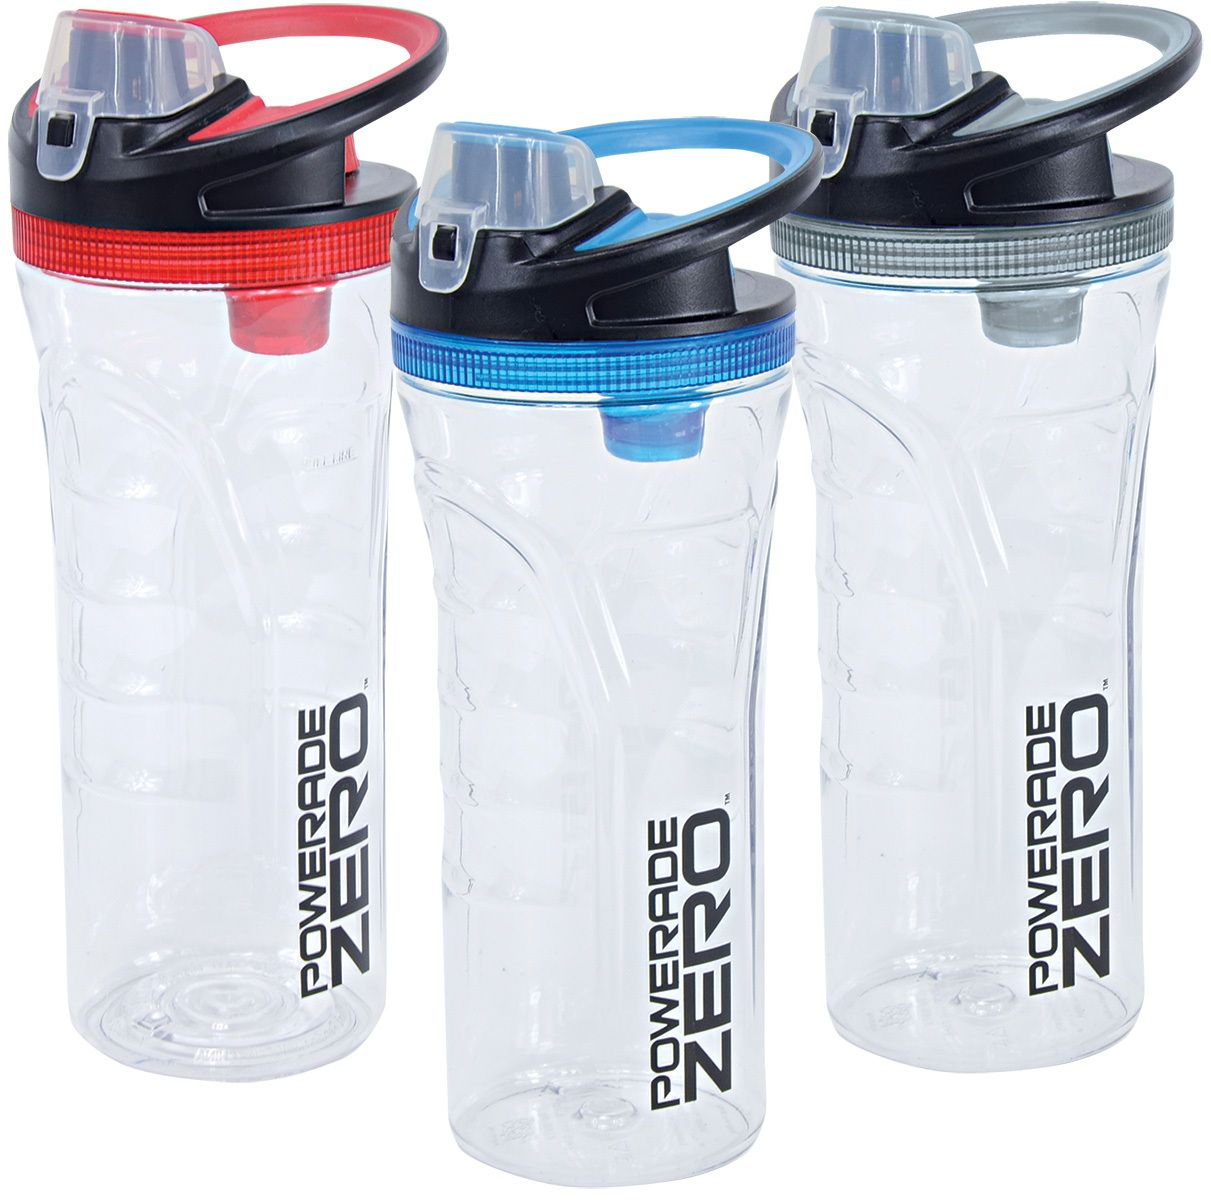 Hydro Squeeze 22 Oz Water Bottle | Stuff to buy | Bottle, Gym water